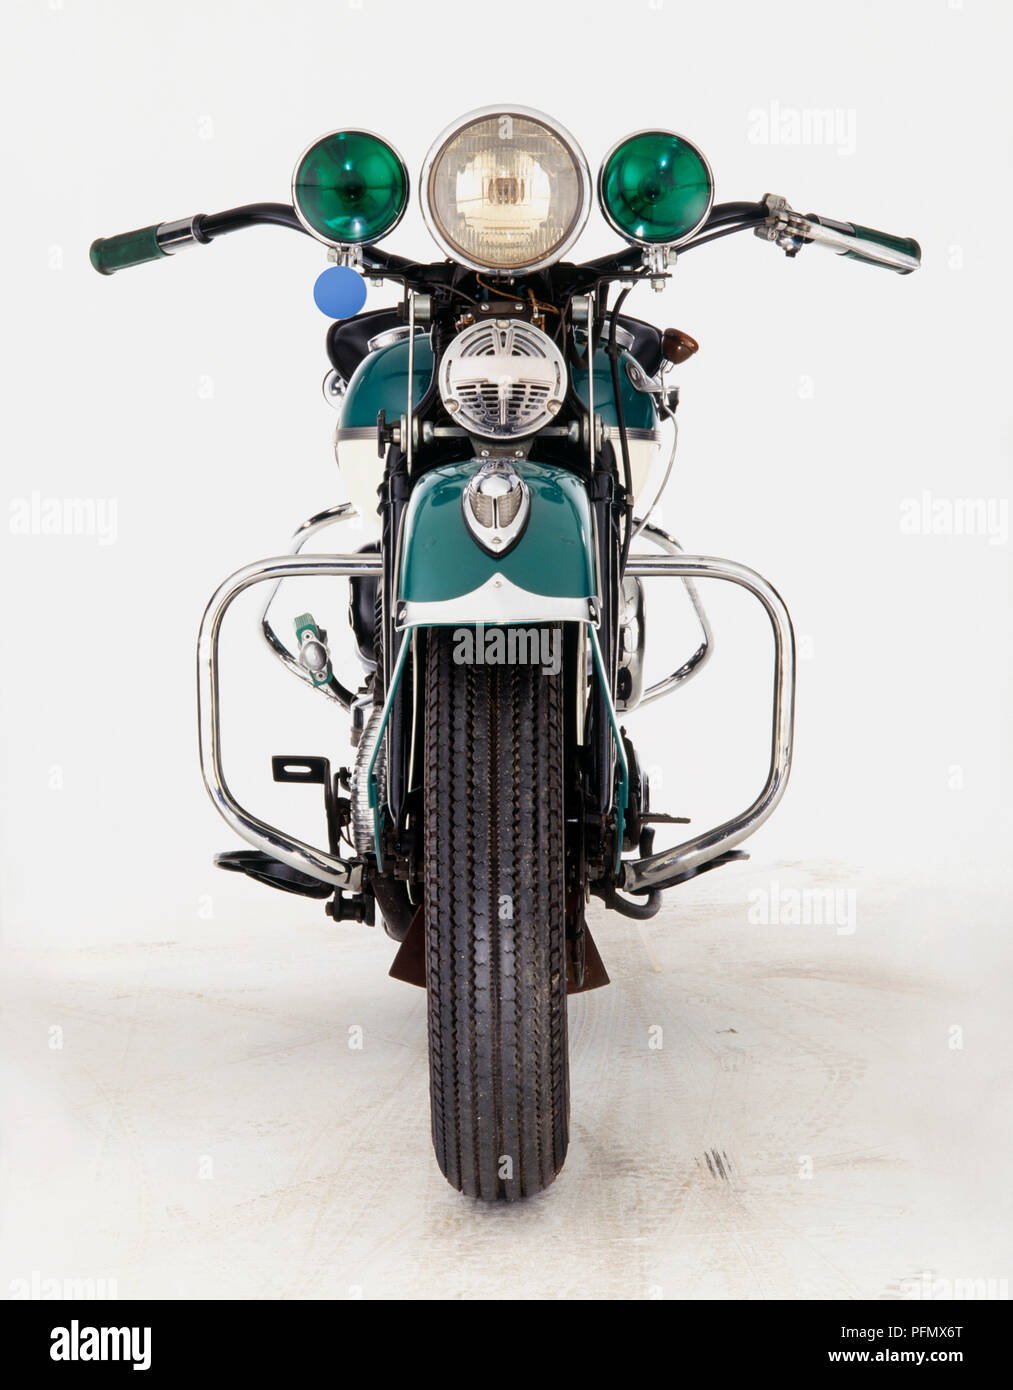 harley davidson wld front view stock photo 216203872 alamy